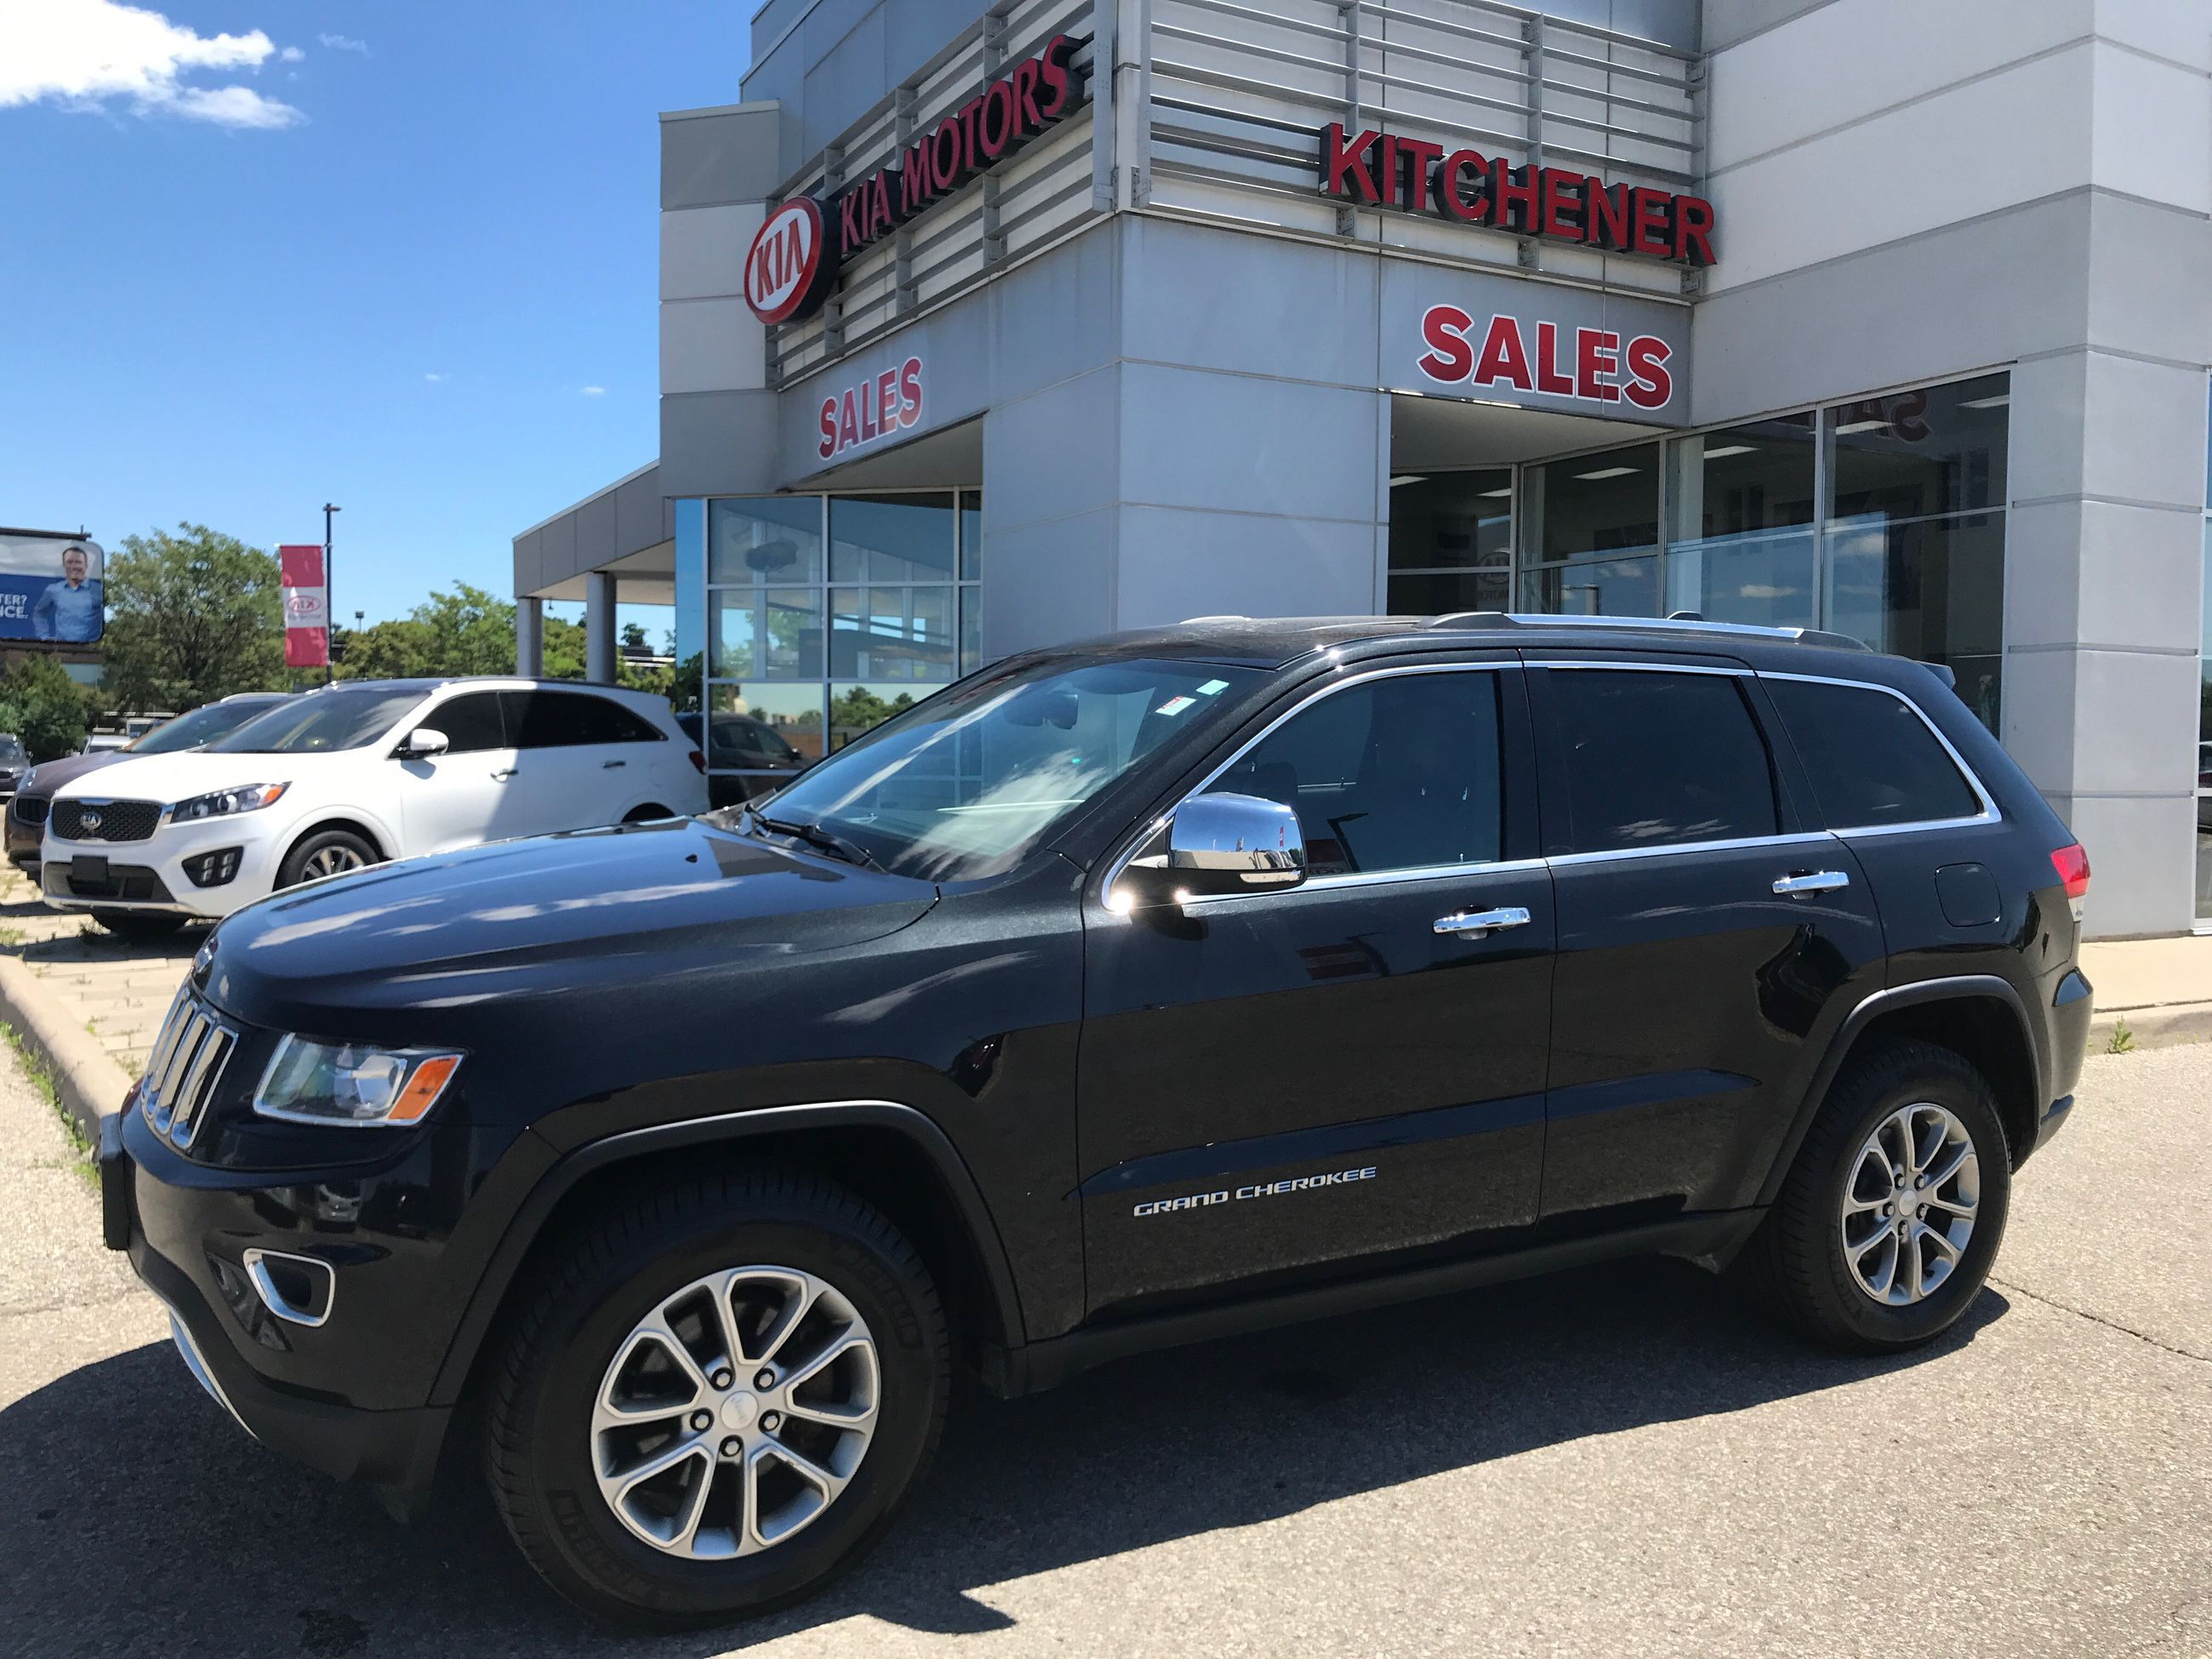 Used 2014 Jeep Grand Cherokee 4x4 Limited for Sale - $23900.0 ...